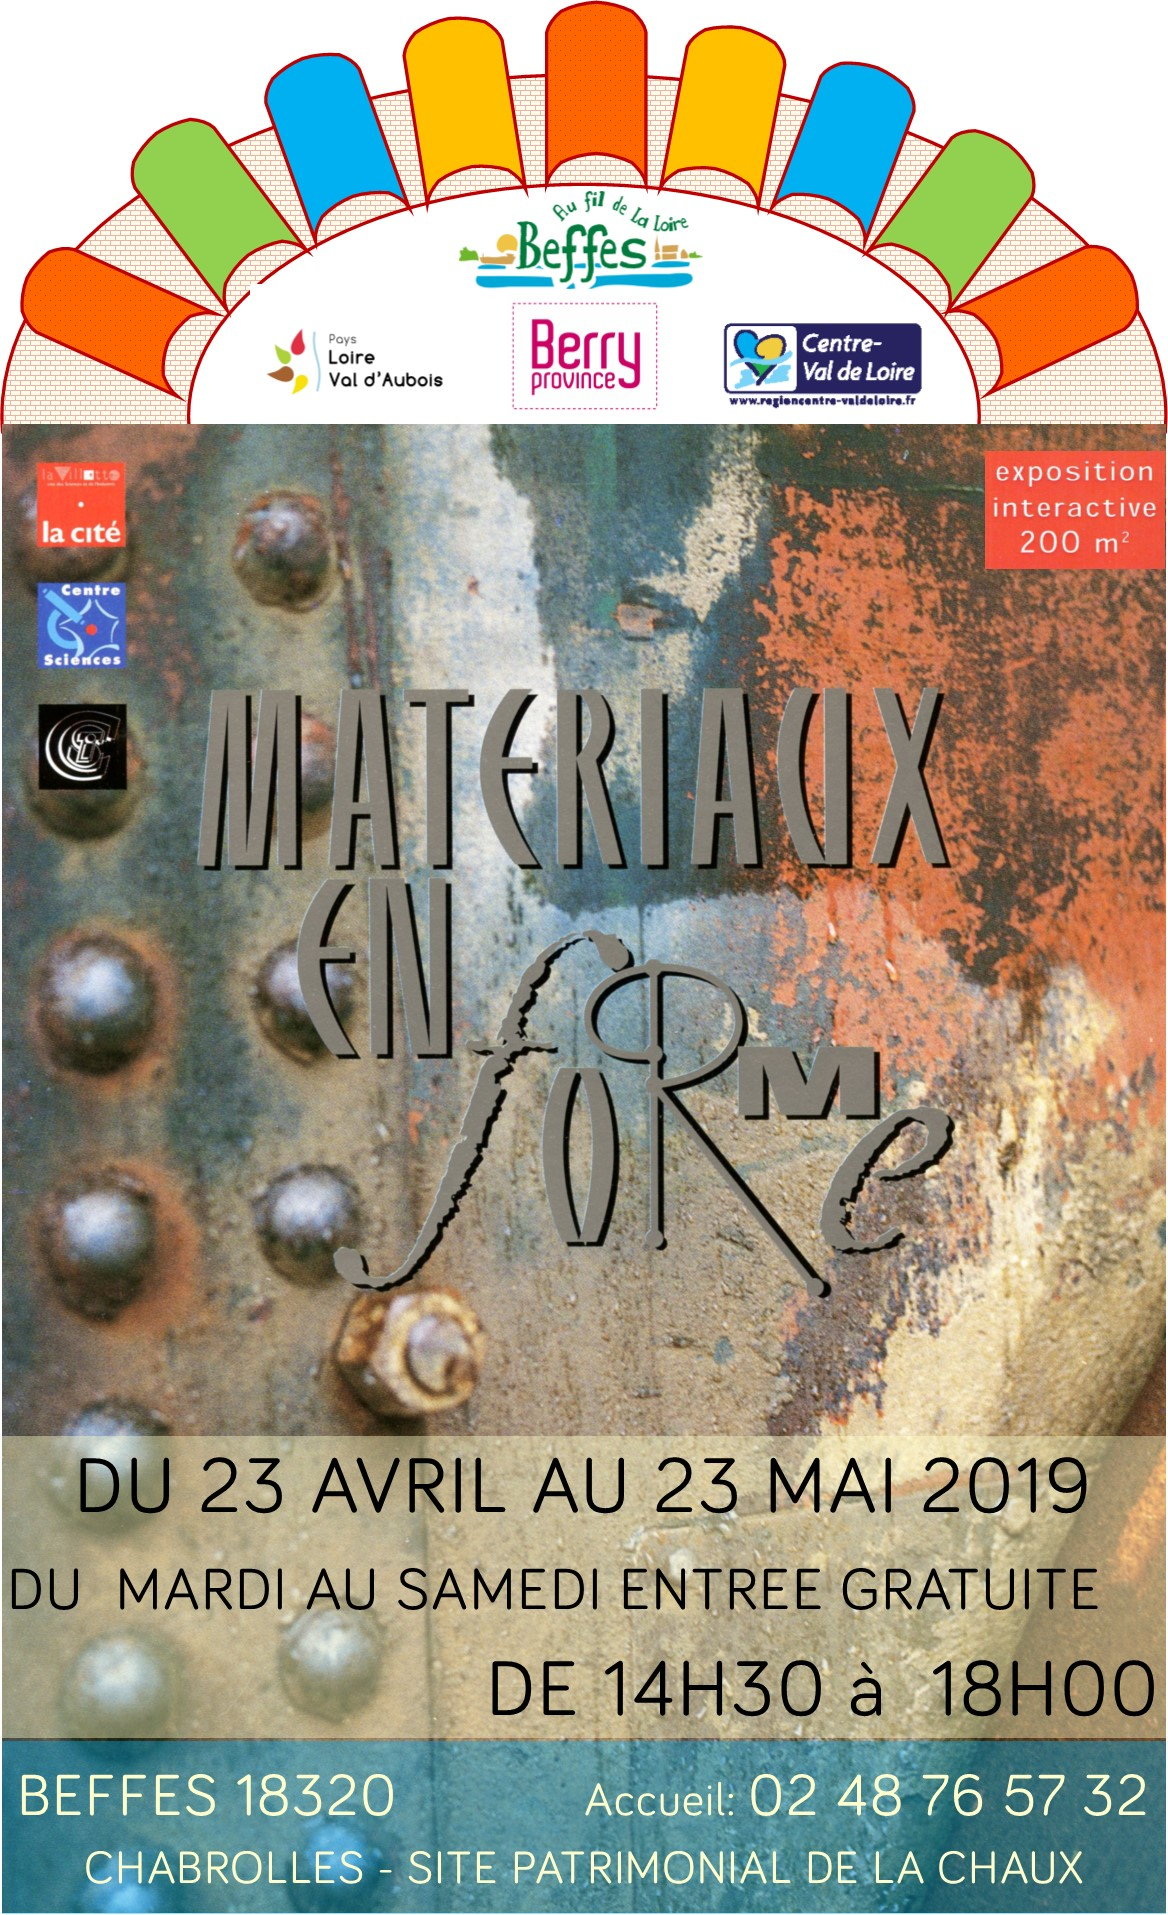 Bef affiche expo centre sciences 23 04 23 05 2019 jpeg